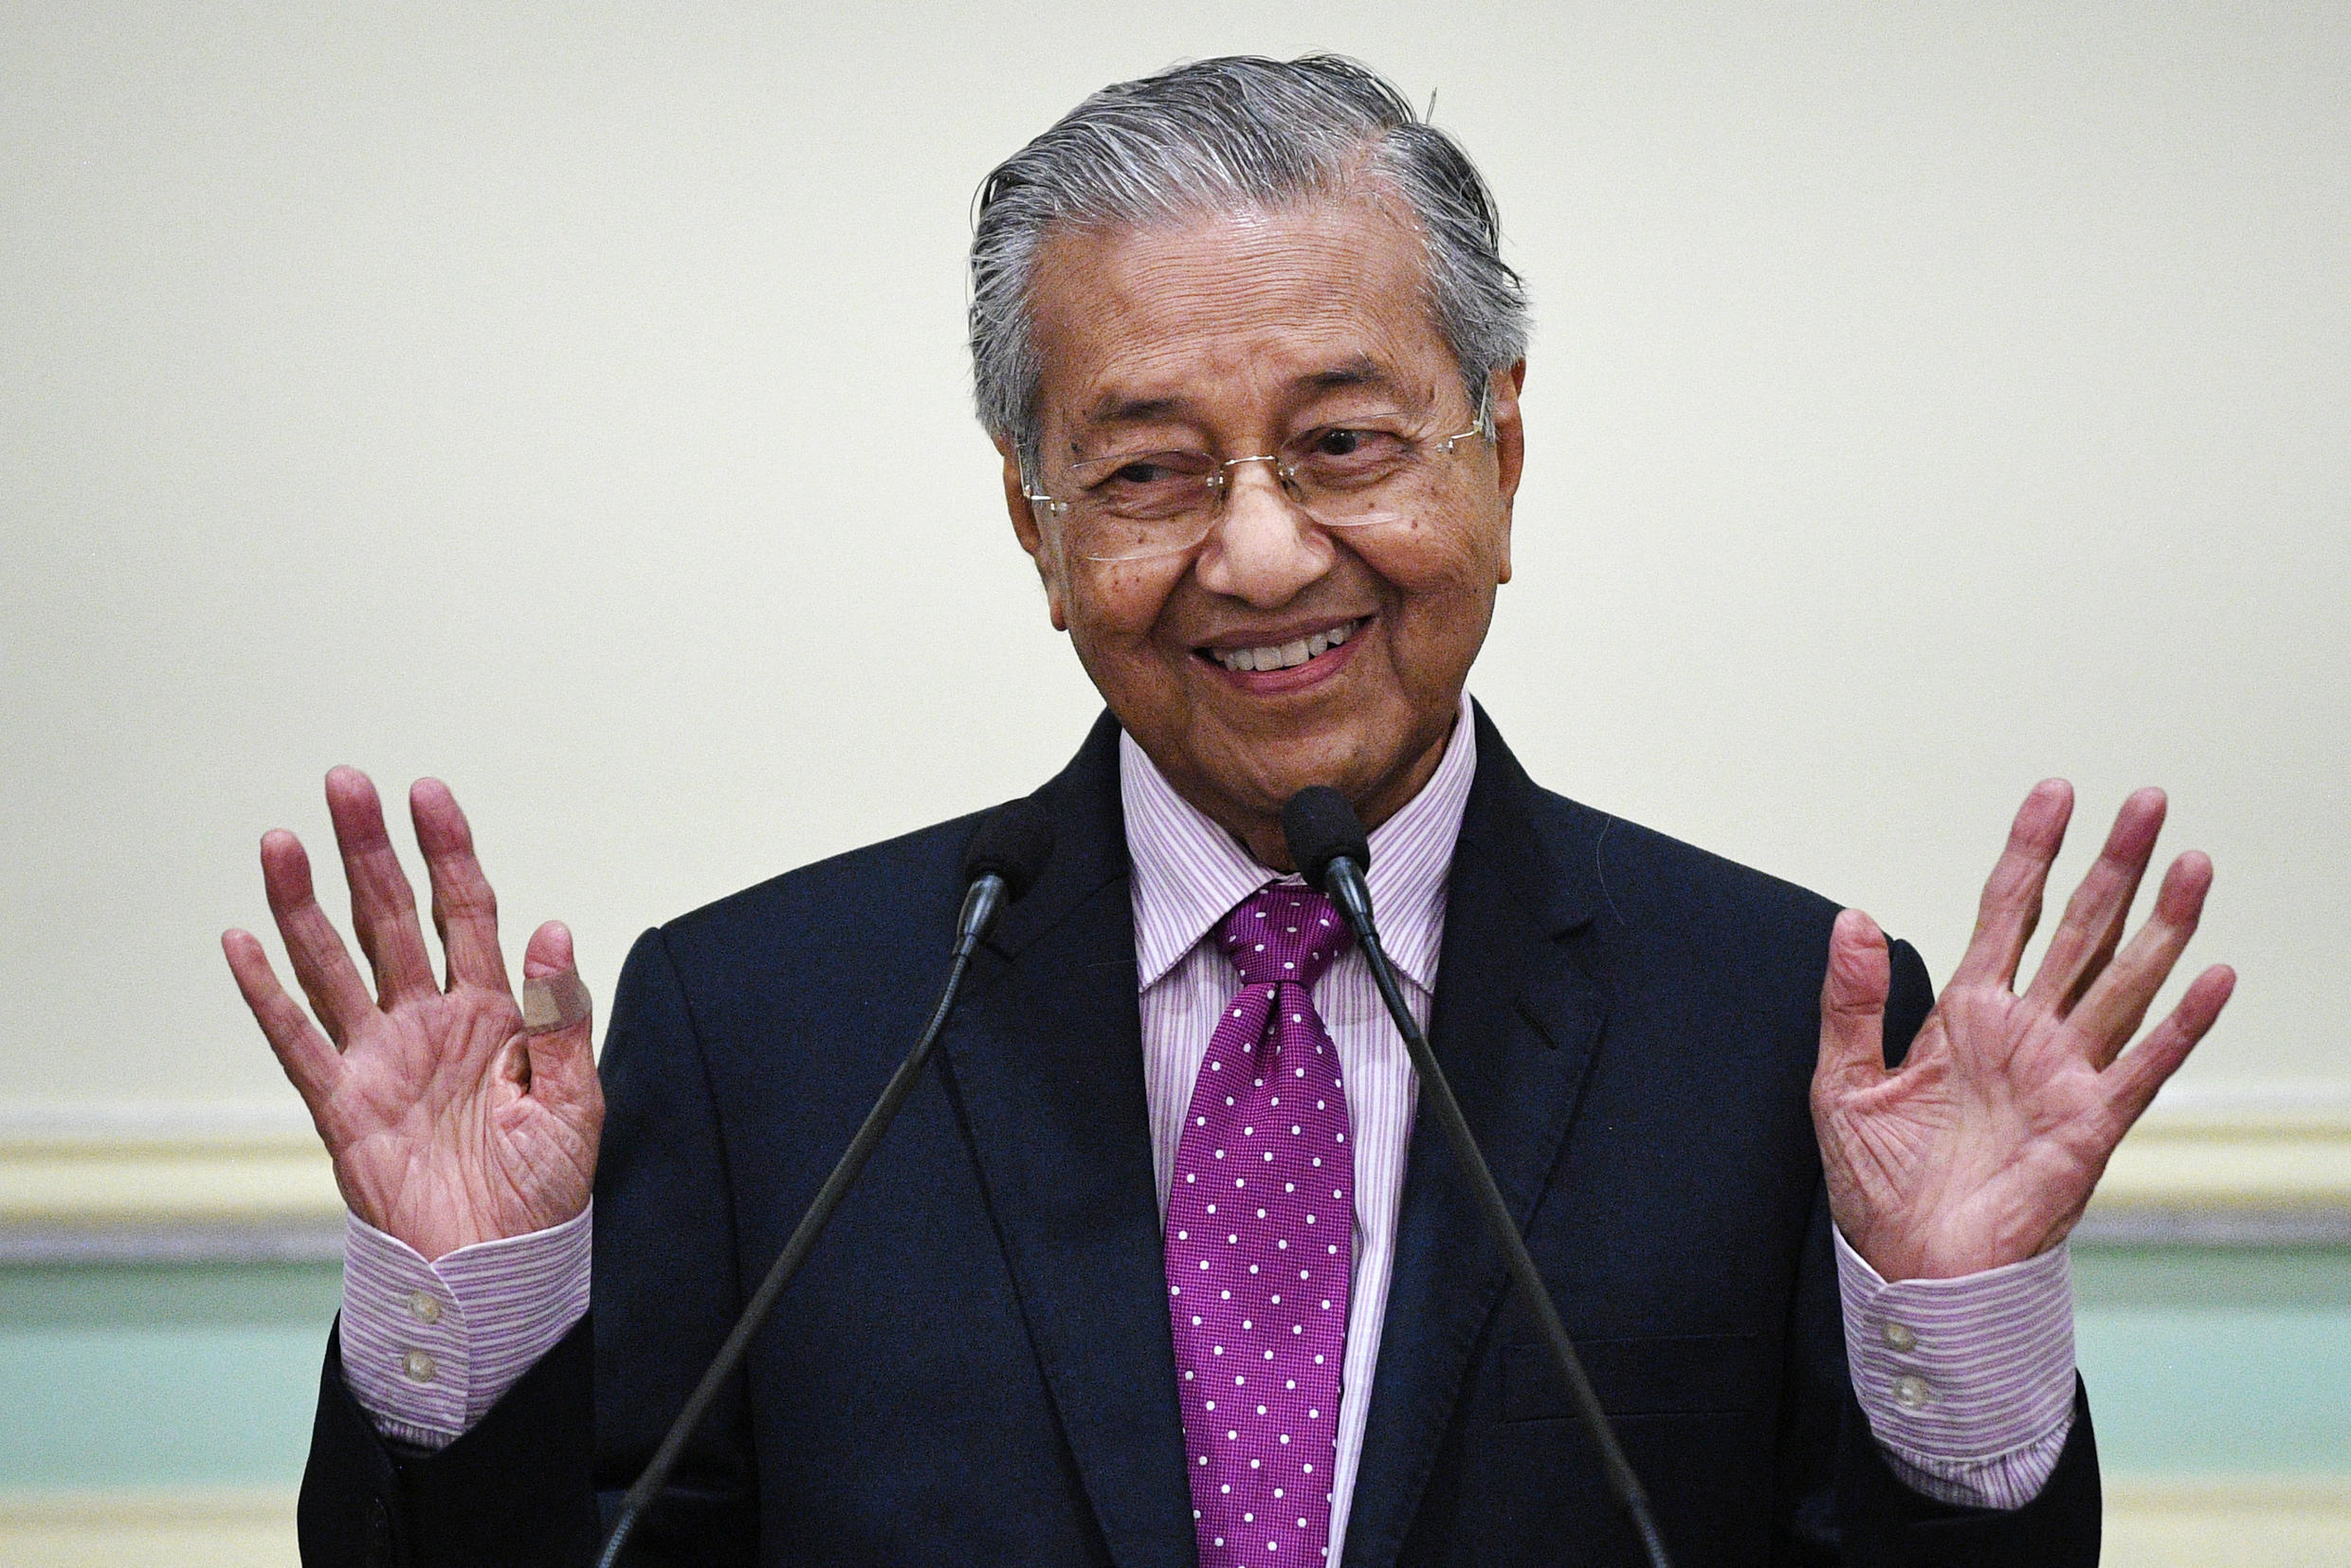 Mahathir Mohamad, 94, has been trying to stay in shape during Malaysia's coronavirus lockdown